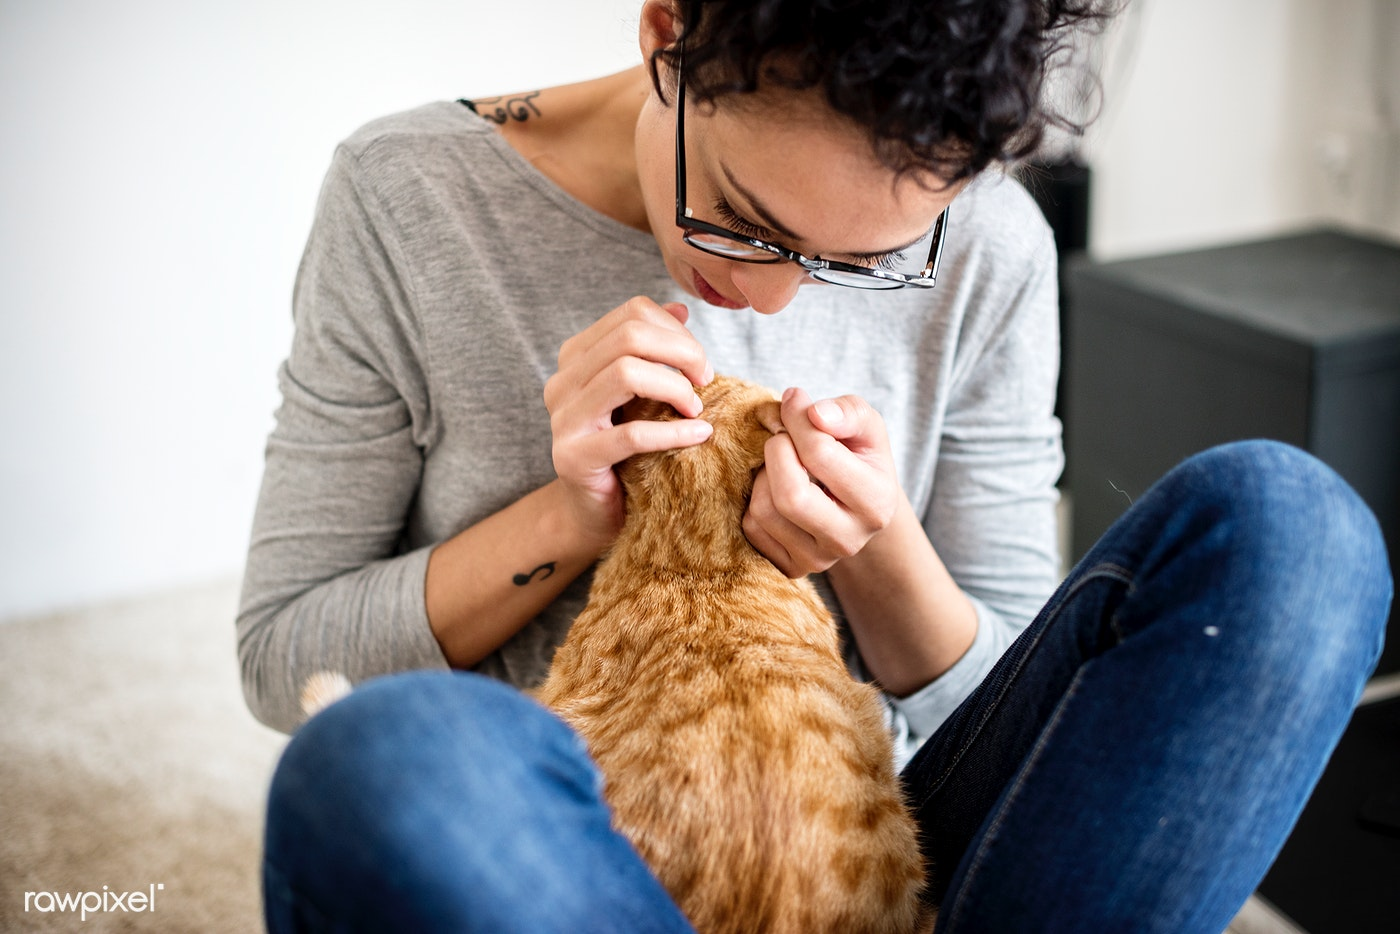 Woman petting a cat in a living room